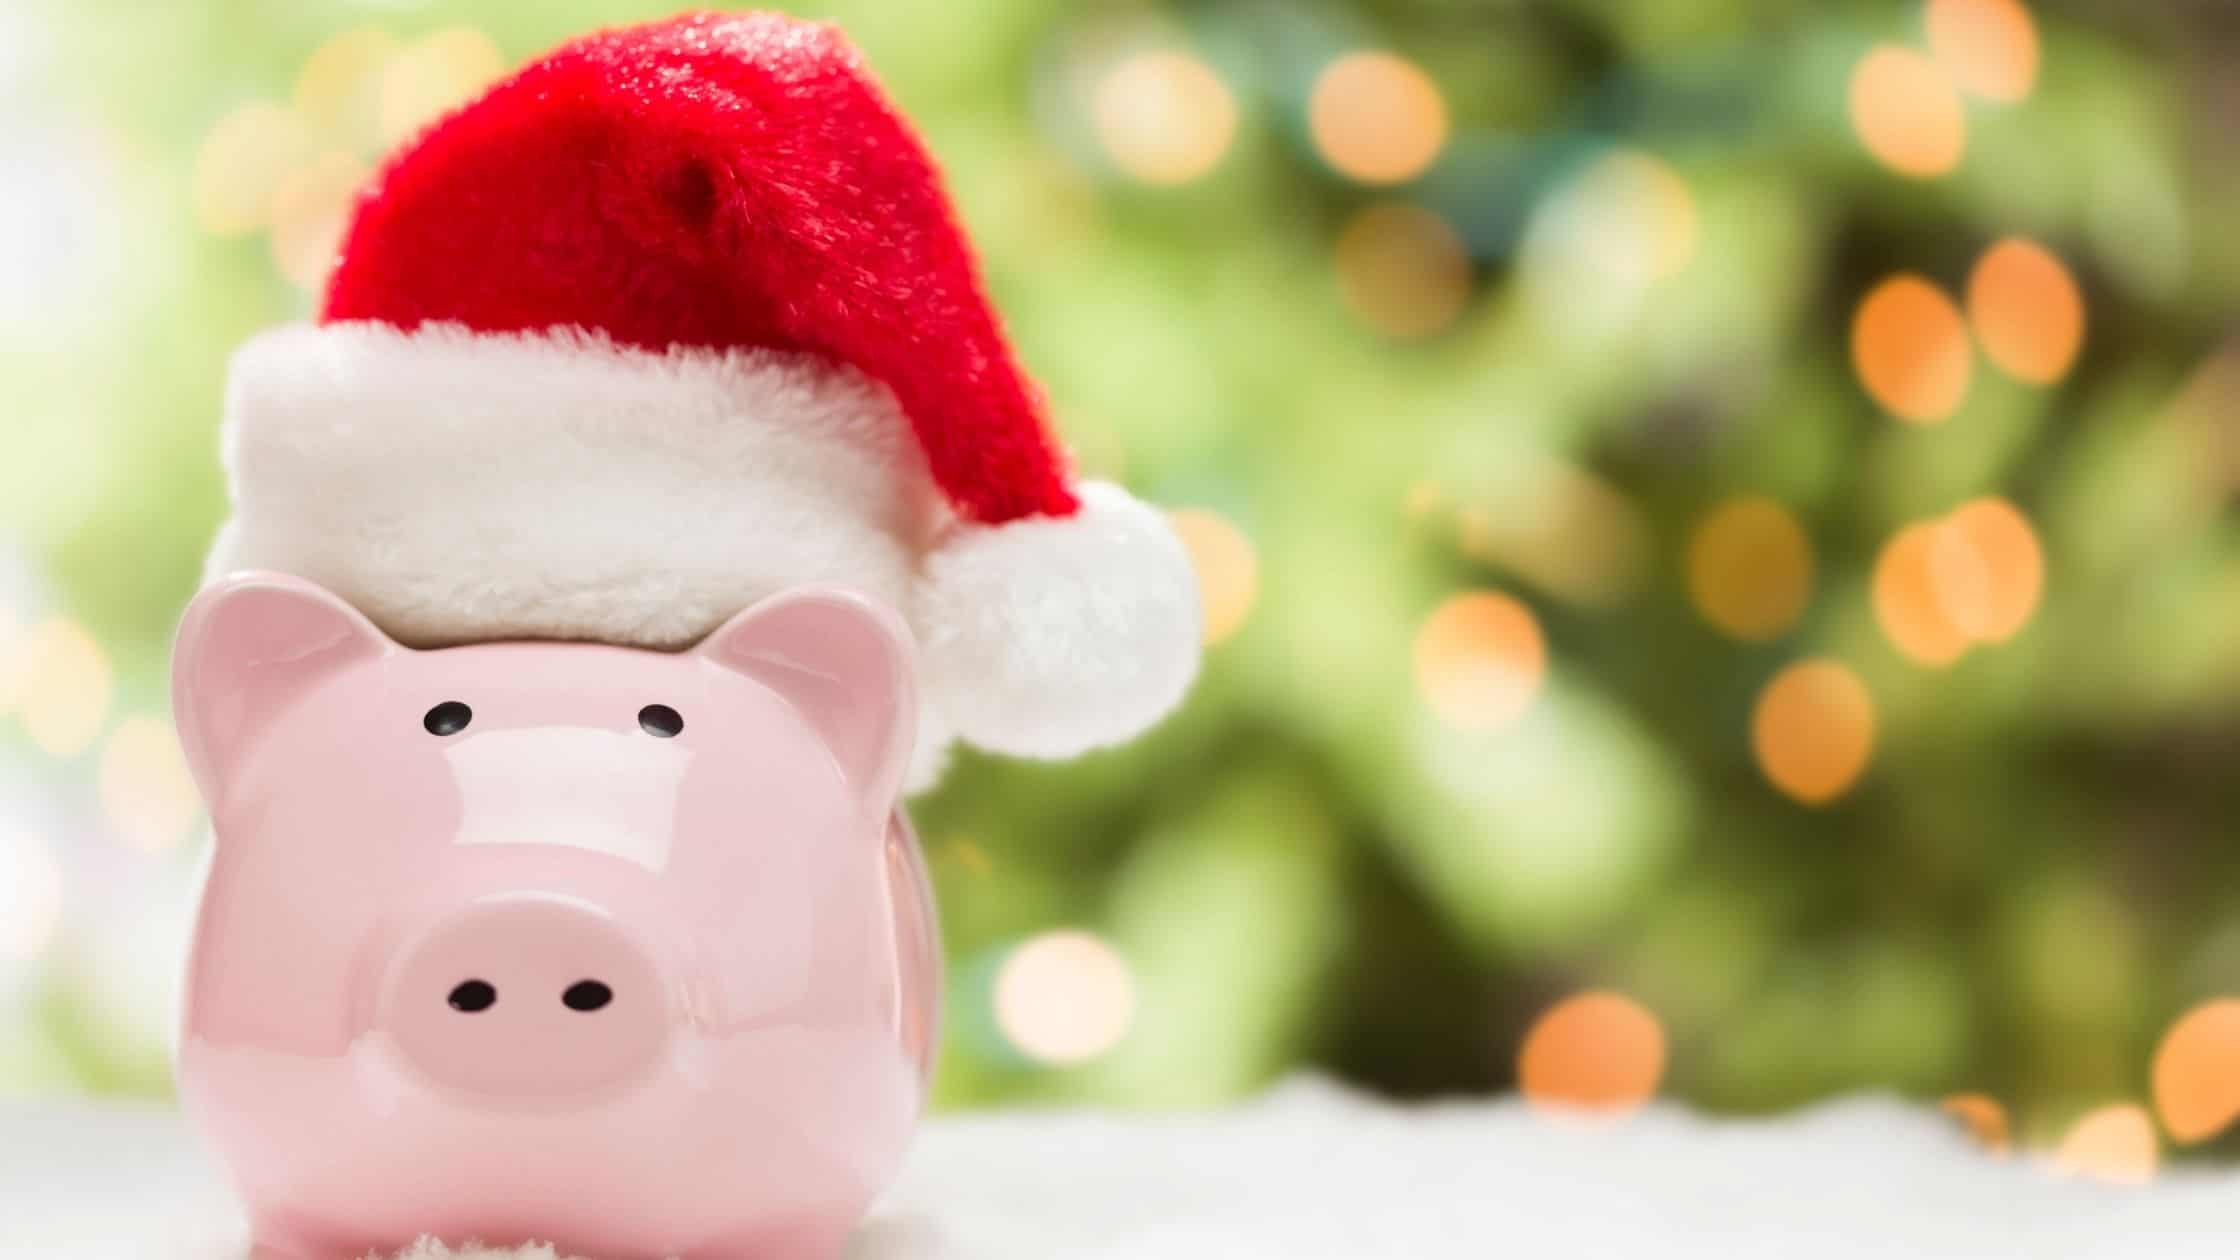 a pink piggy bank wearing a santa hat with a christmas tree in the background